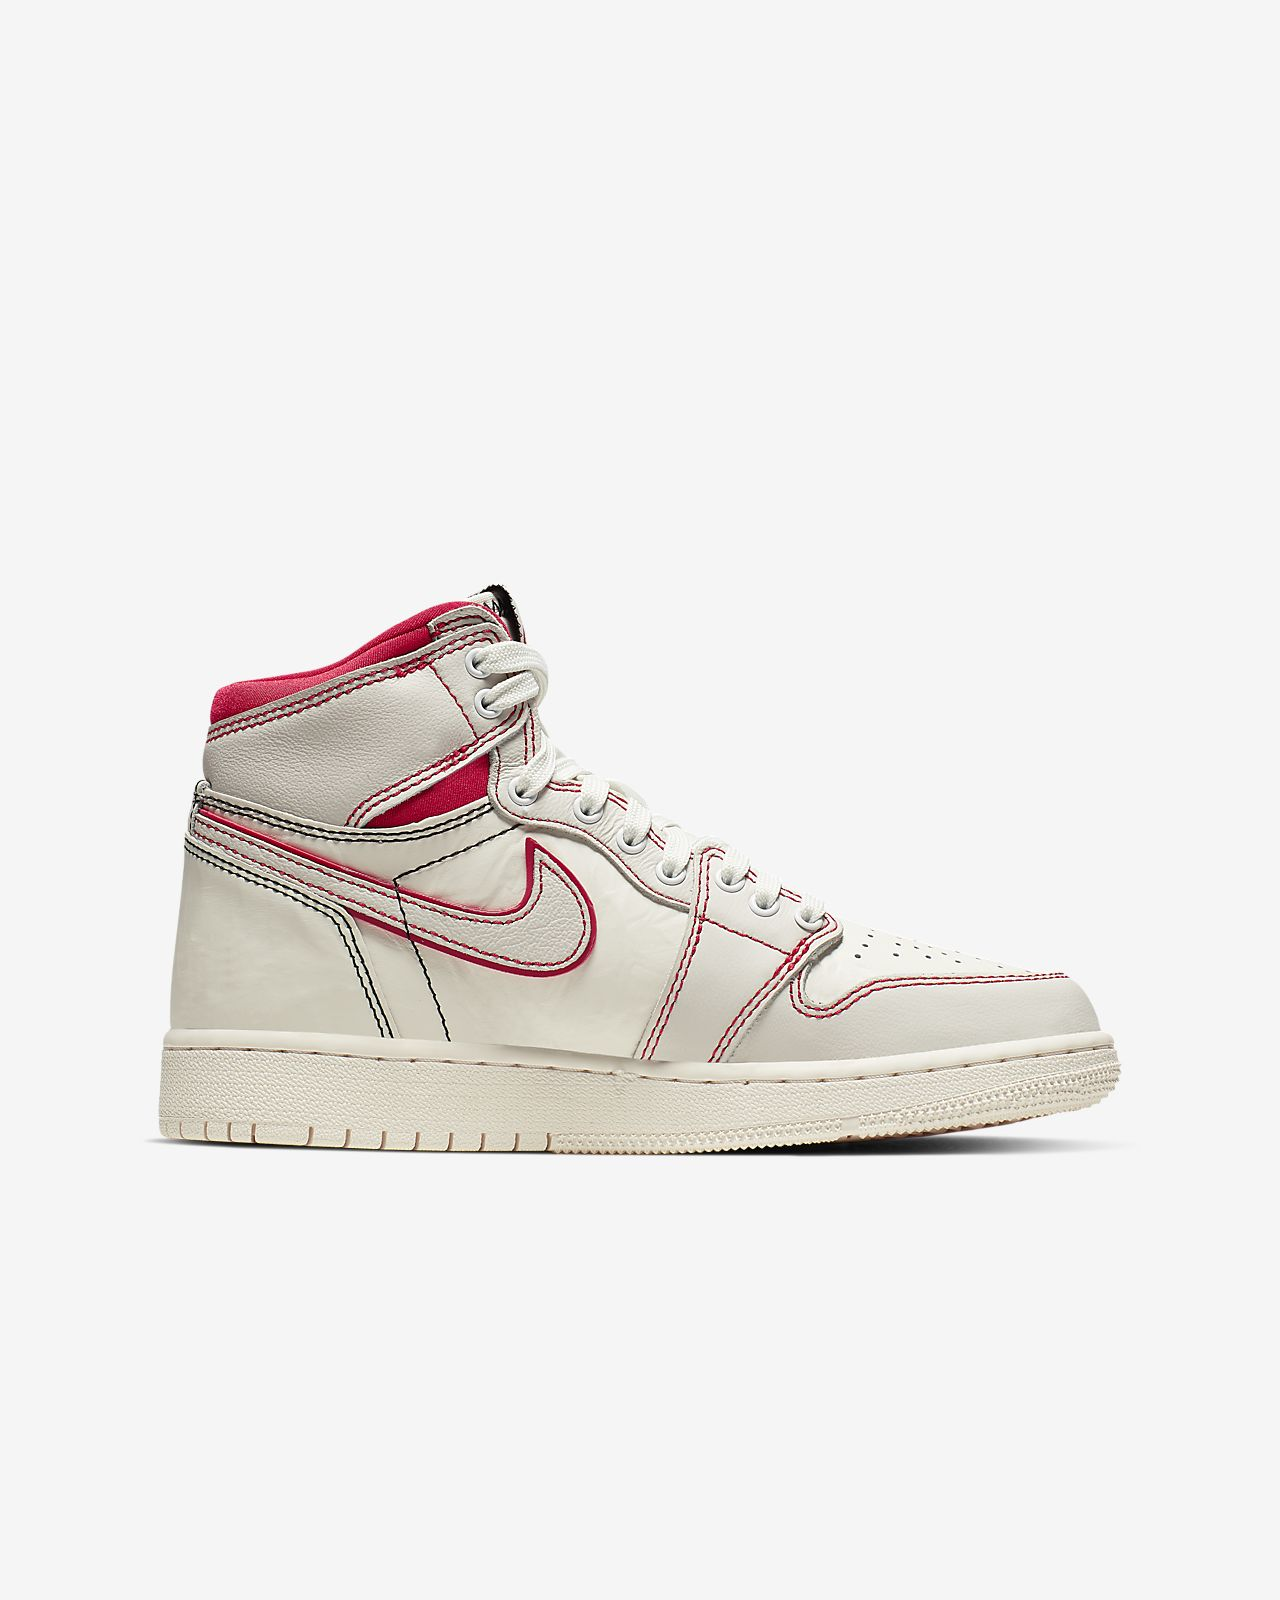 99a0147b95d Air Jordan 1 Retro High OG Boys' Shoe. Nike.com